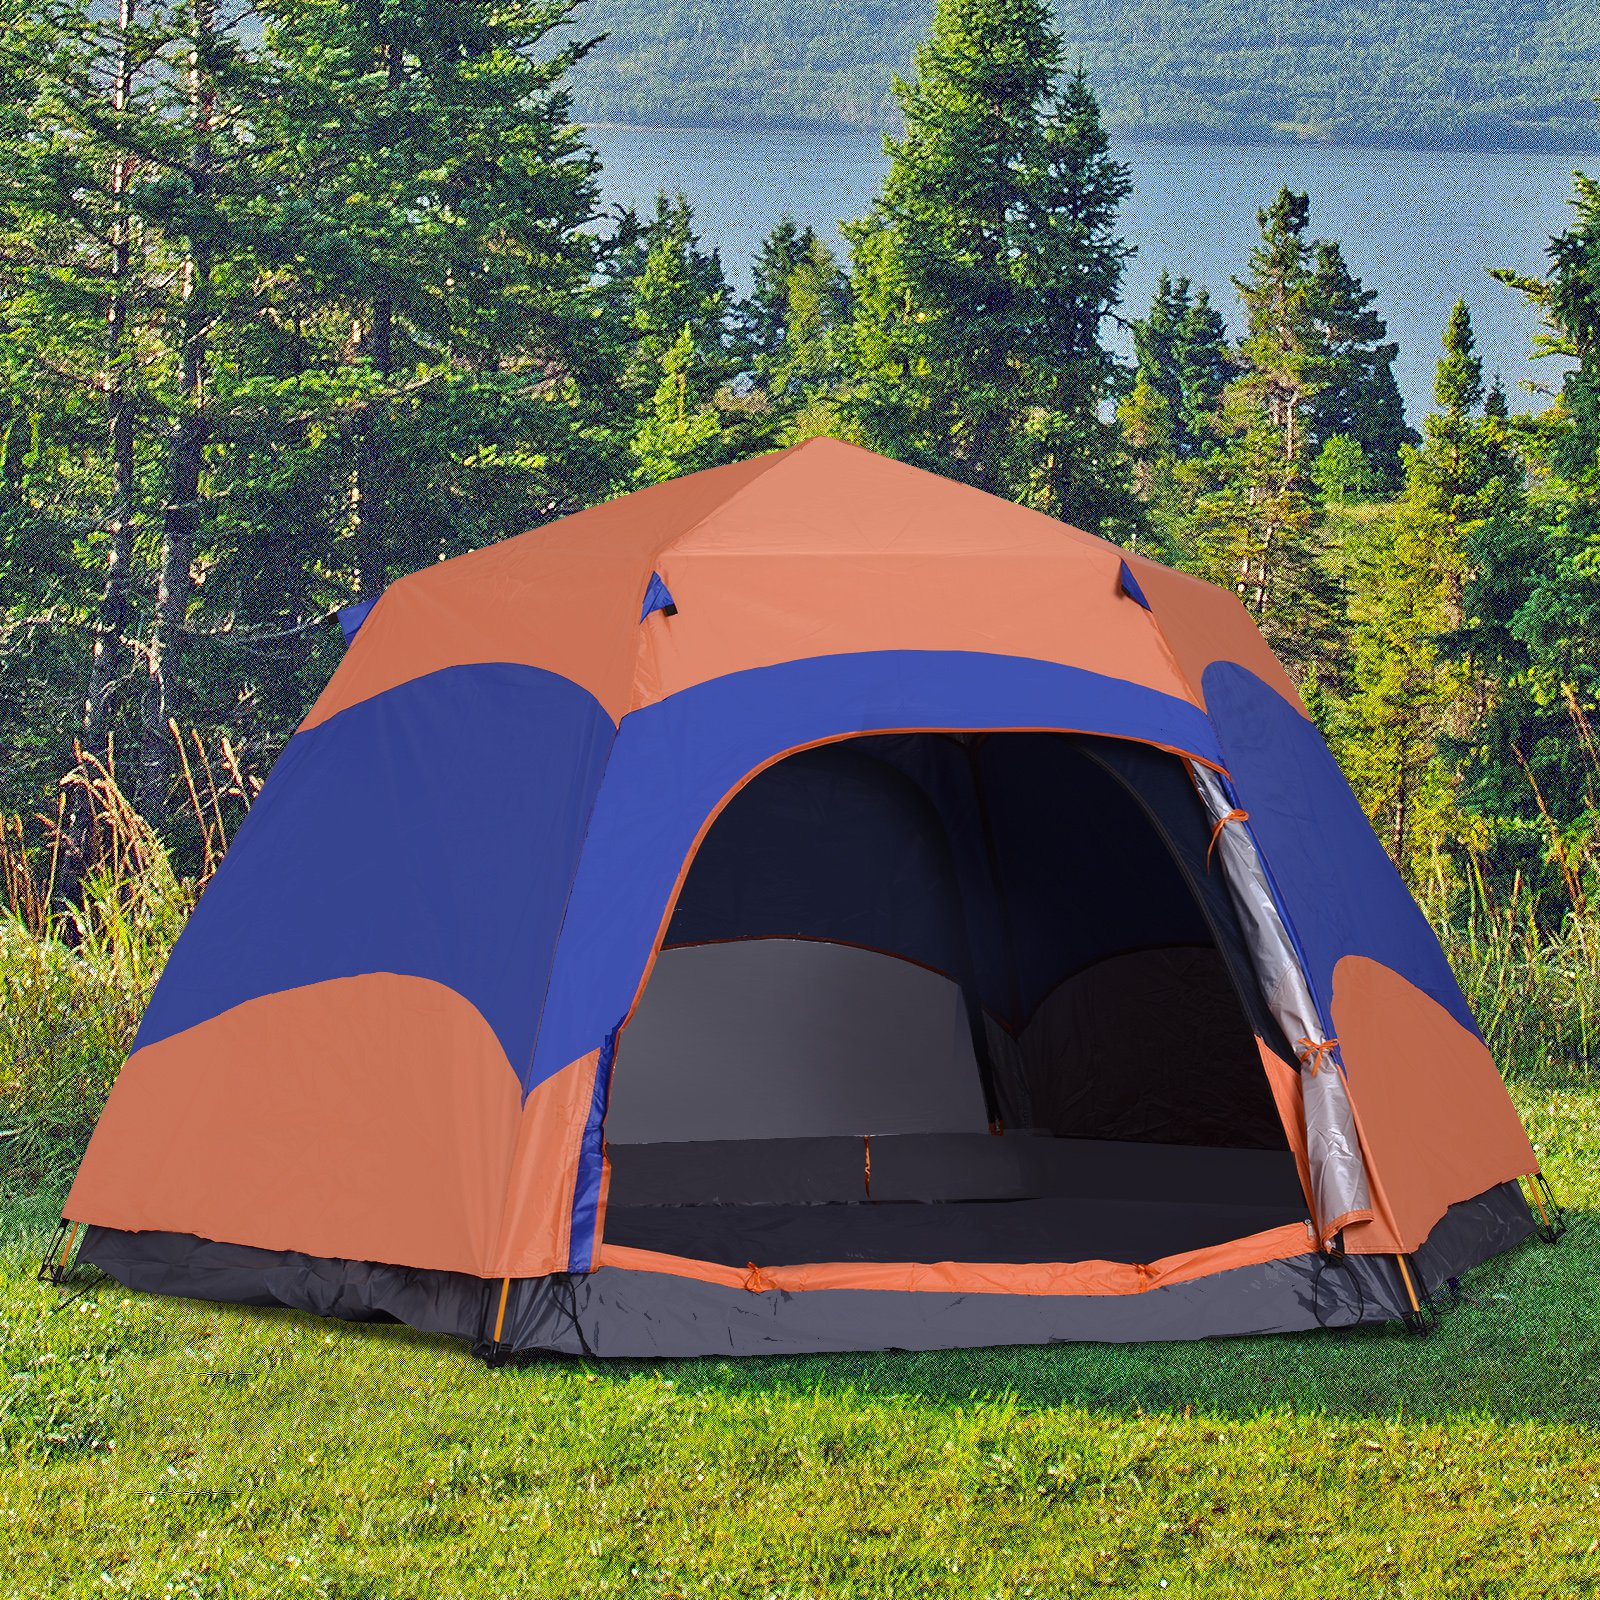 Outsunny 5-6 people Hexagon Double Layer Camping Tent ...